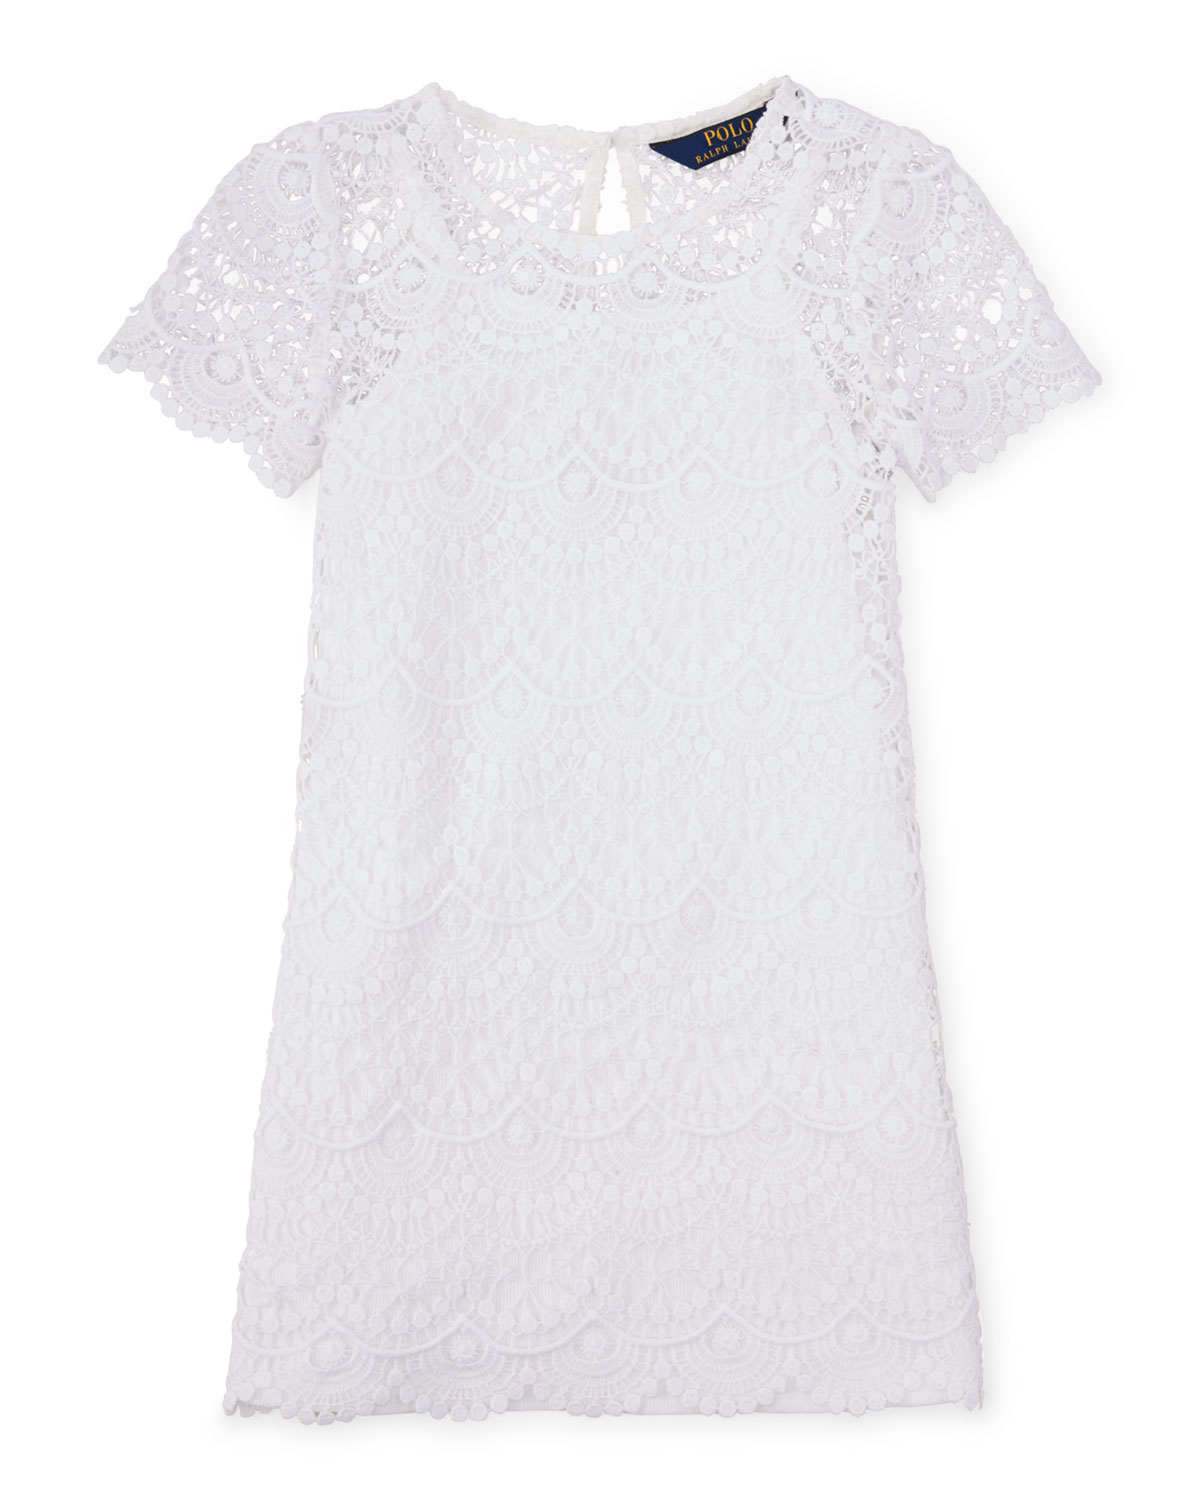 Short-Sleeve Chemical Lace Shift Dress, White, Size 2-6X, Women's, Size: 2 - Ralph Lauren Childrenswear